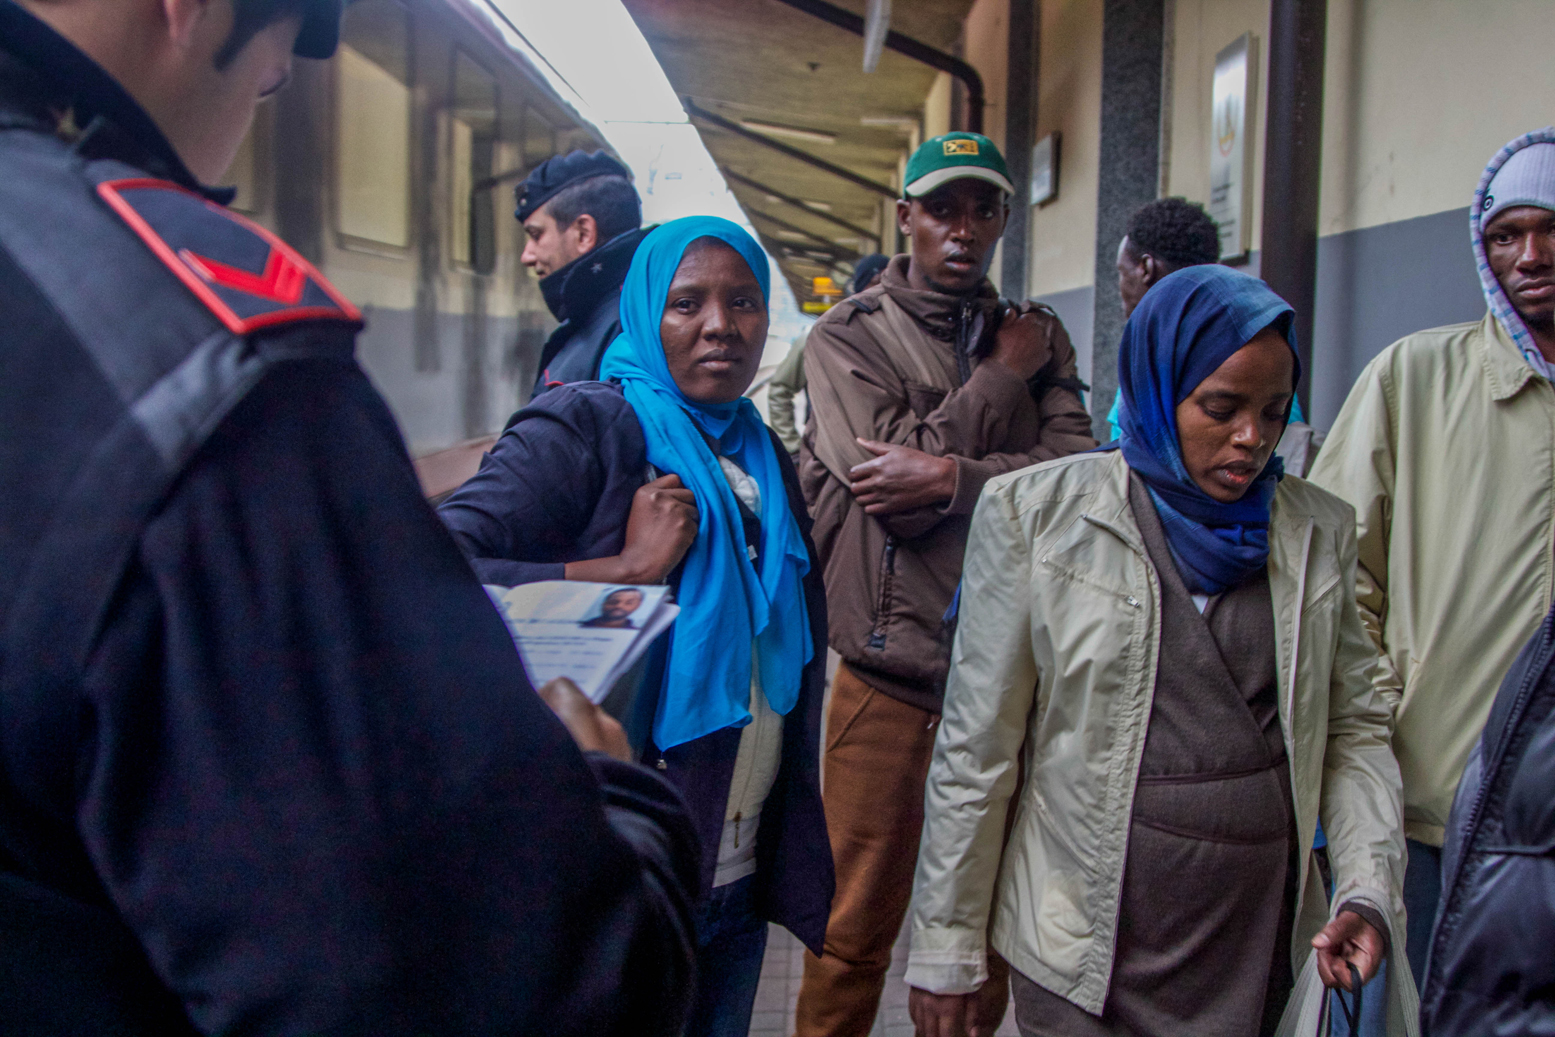 Migrants at Brenner Station, Italy